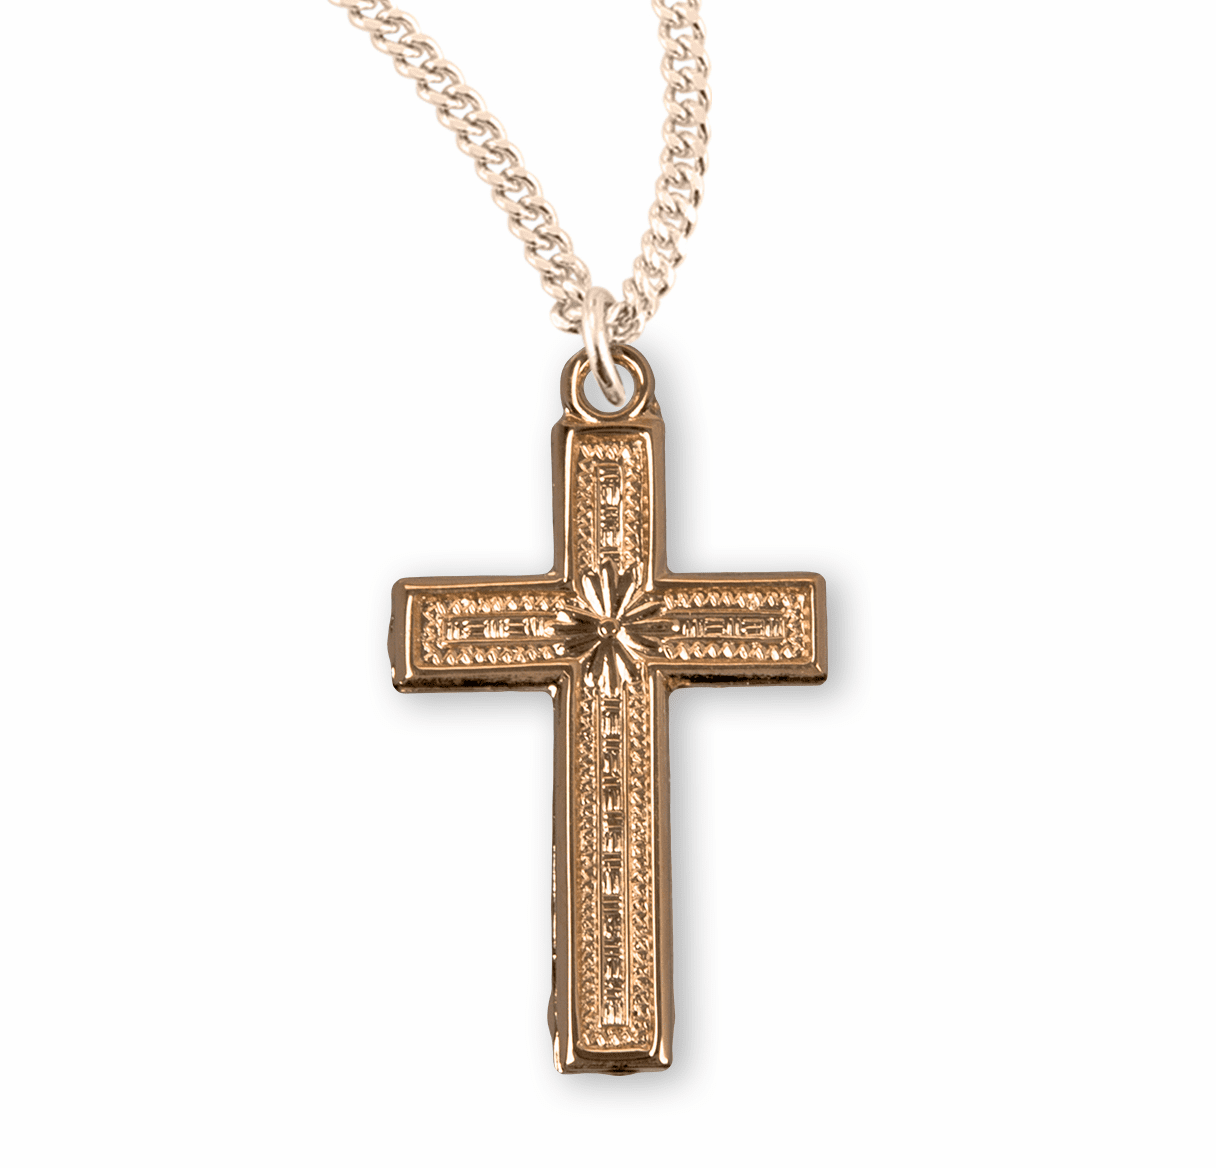 HMH Religious Gold Over Sterling Silver Cross Necklace